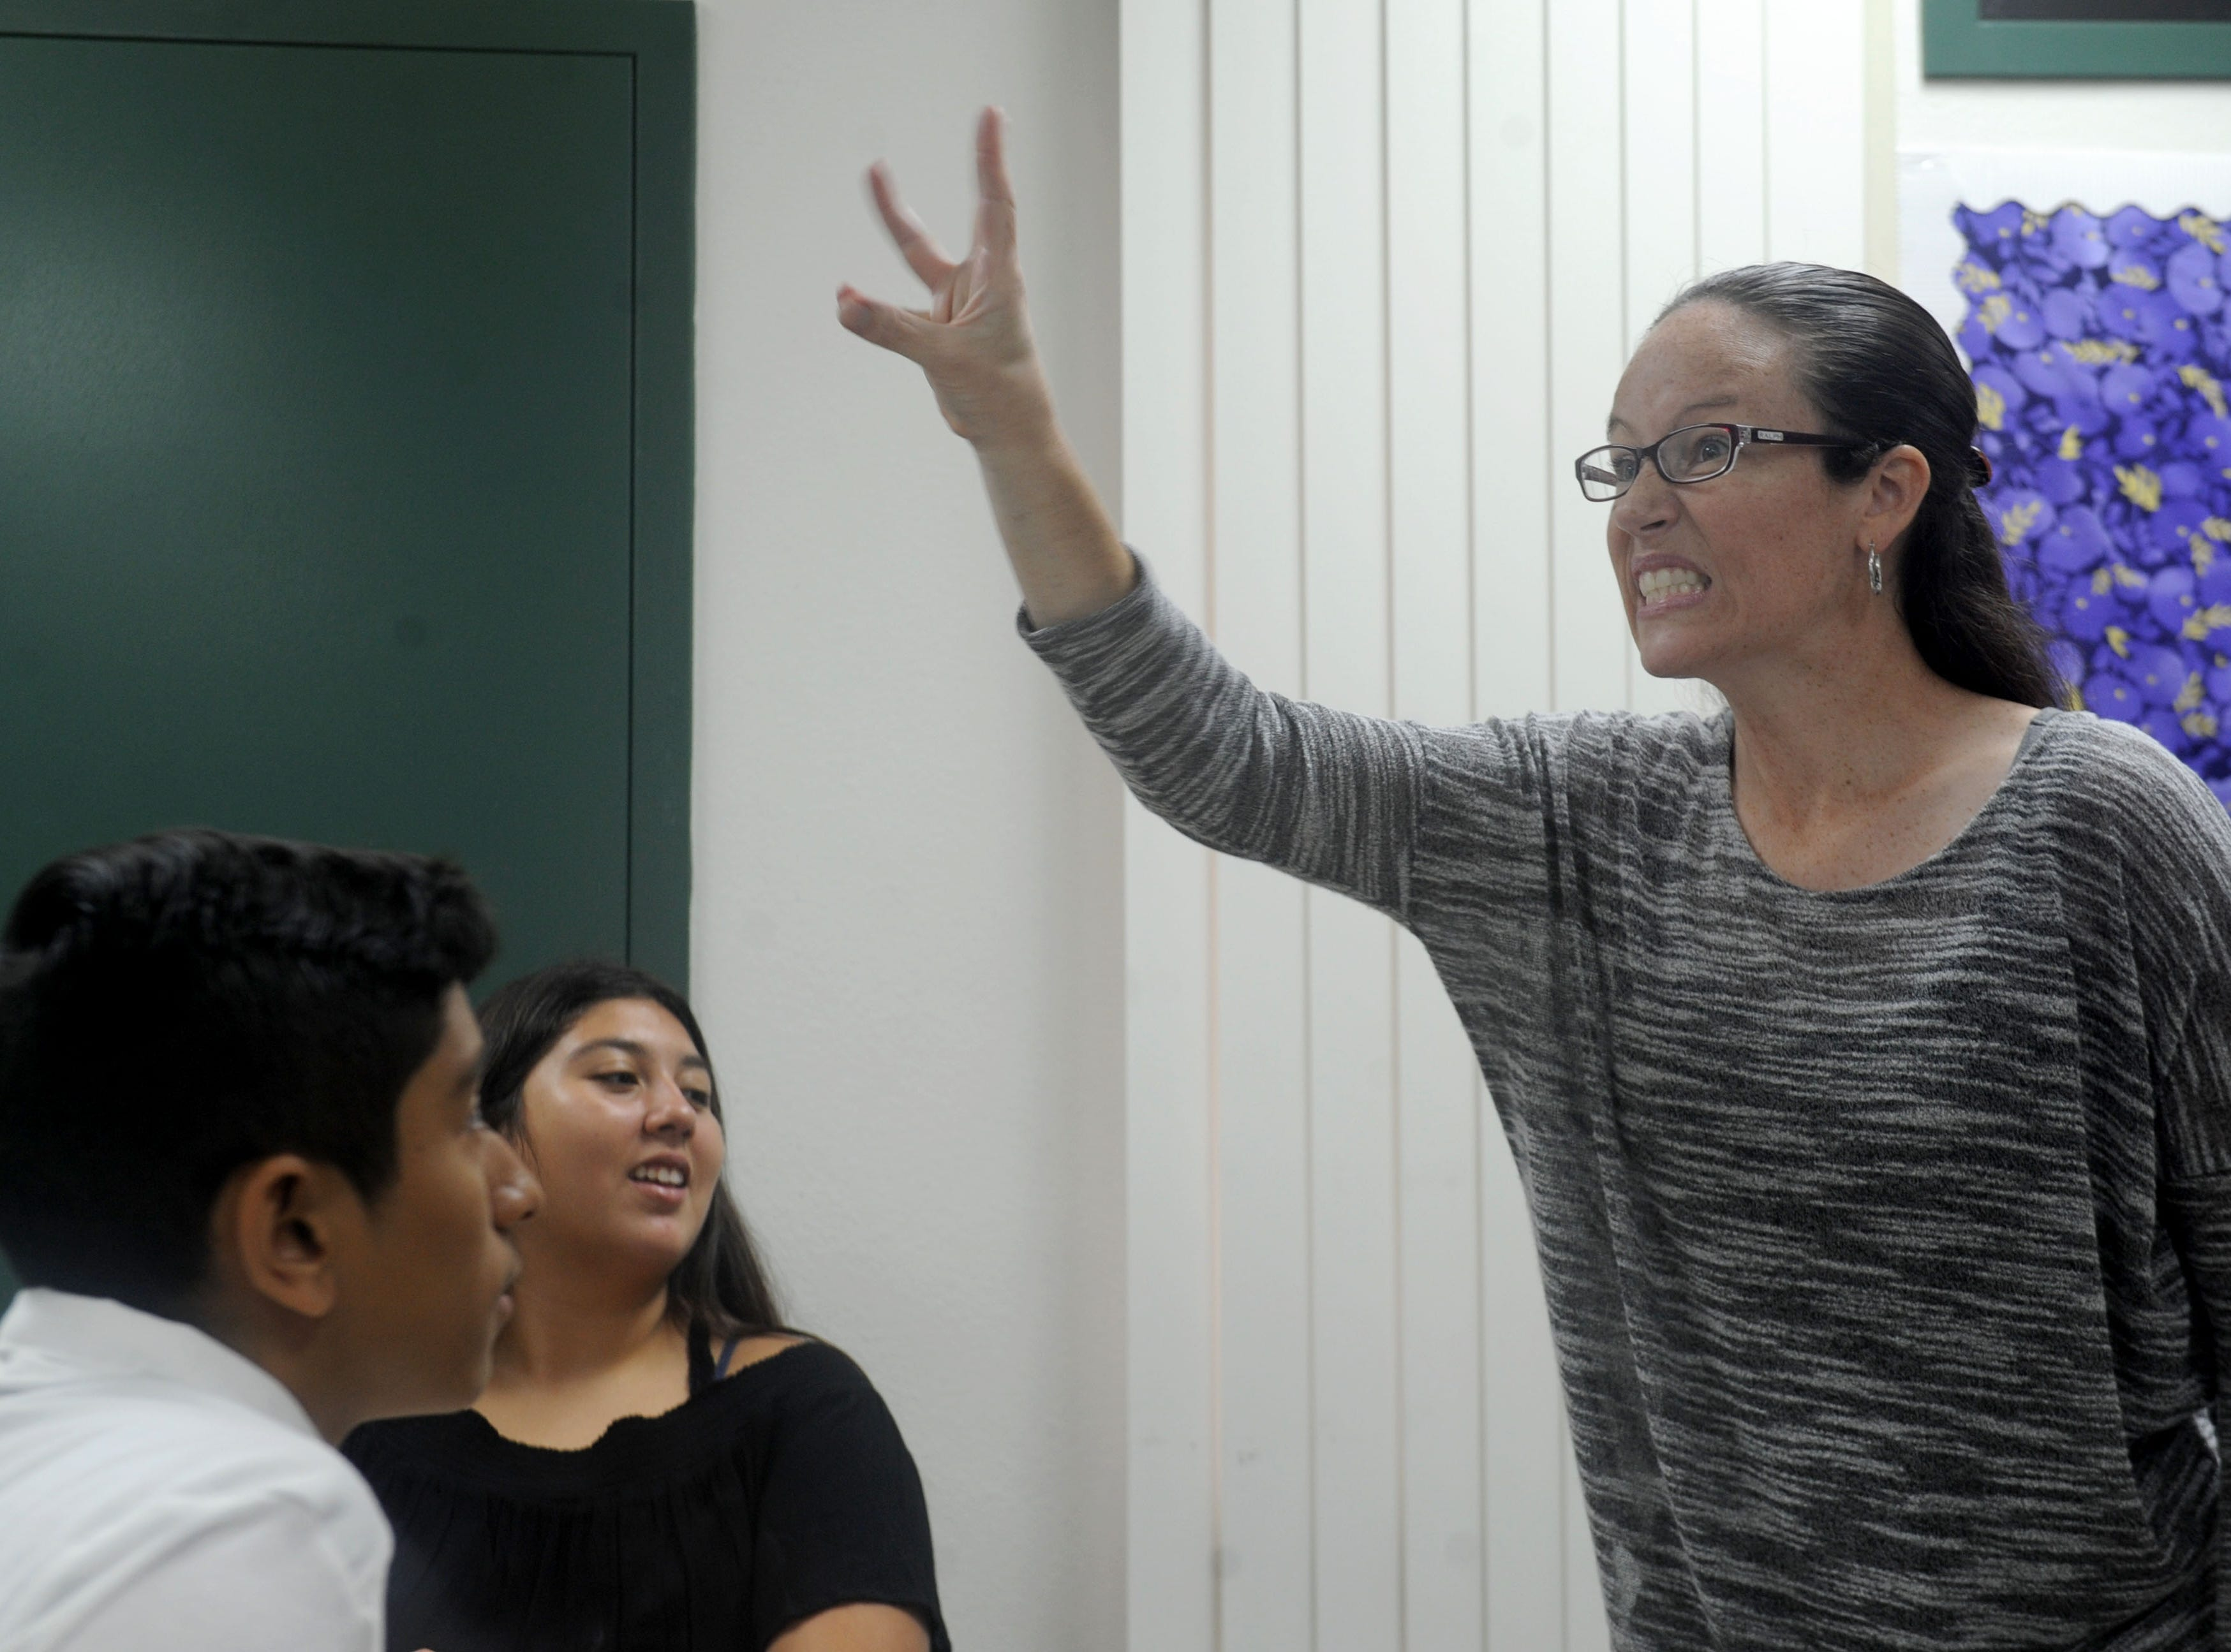 From left, freshmen Francisco Soto and Natalie Villalobos look at Danielle Bowler, who teaches American Sign Language at Moorpark High School. The school added the class after students requested it.